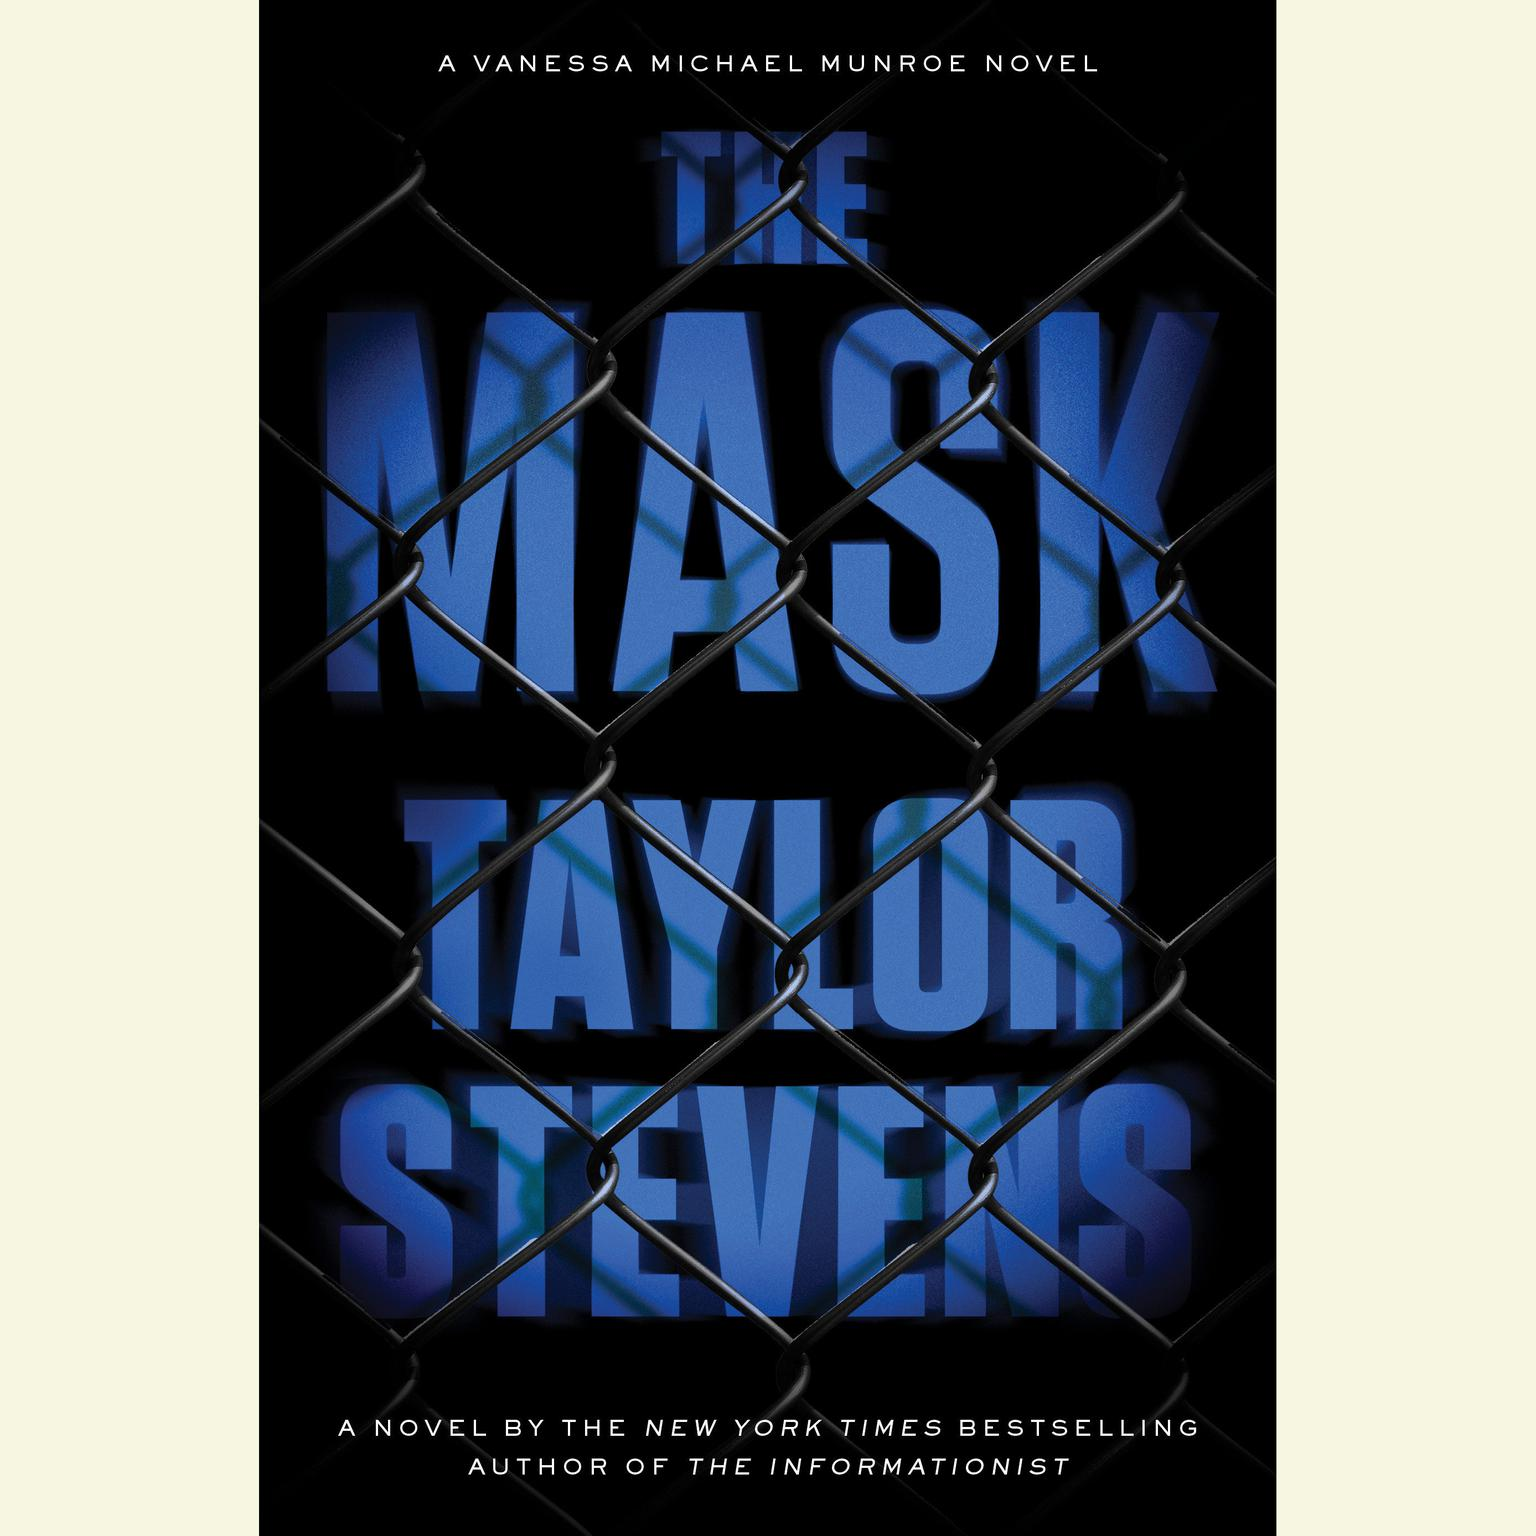 Printable The Mask: A Vanessa Michael Munroe Novel Audiobook Cover Art